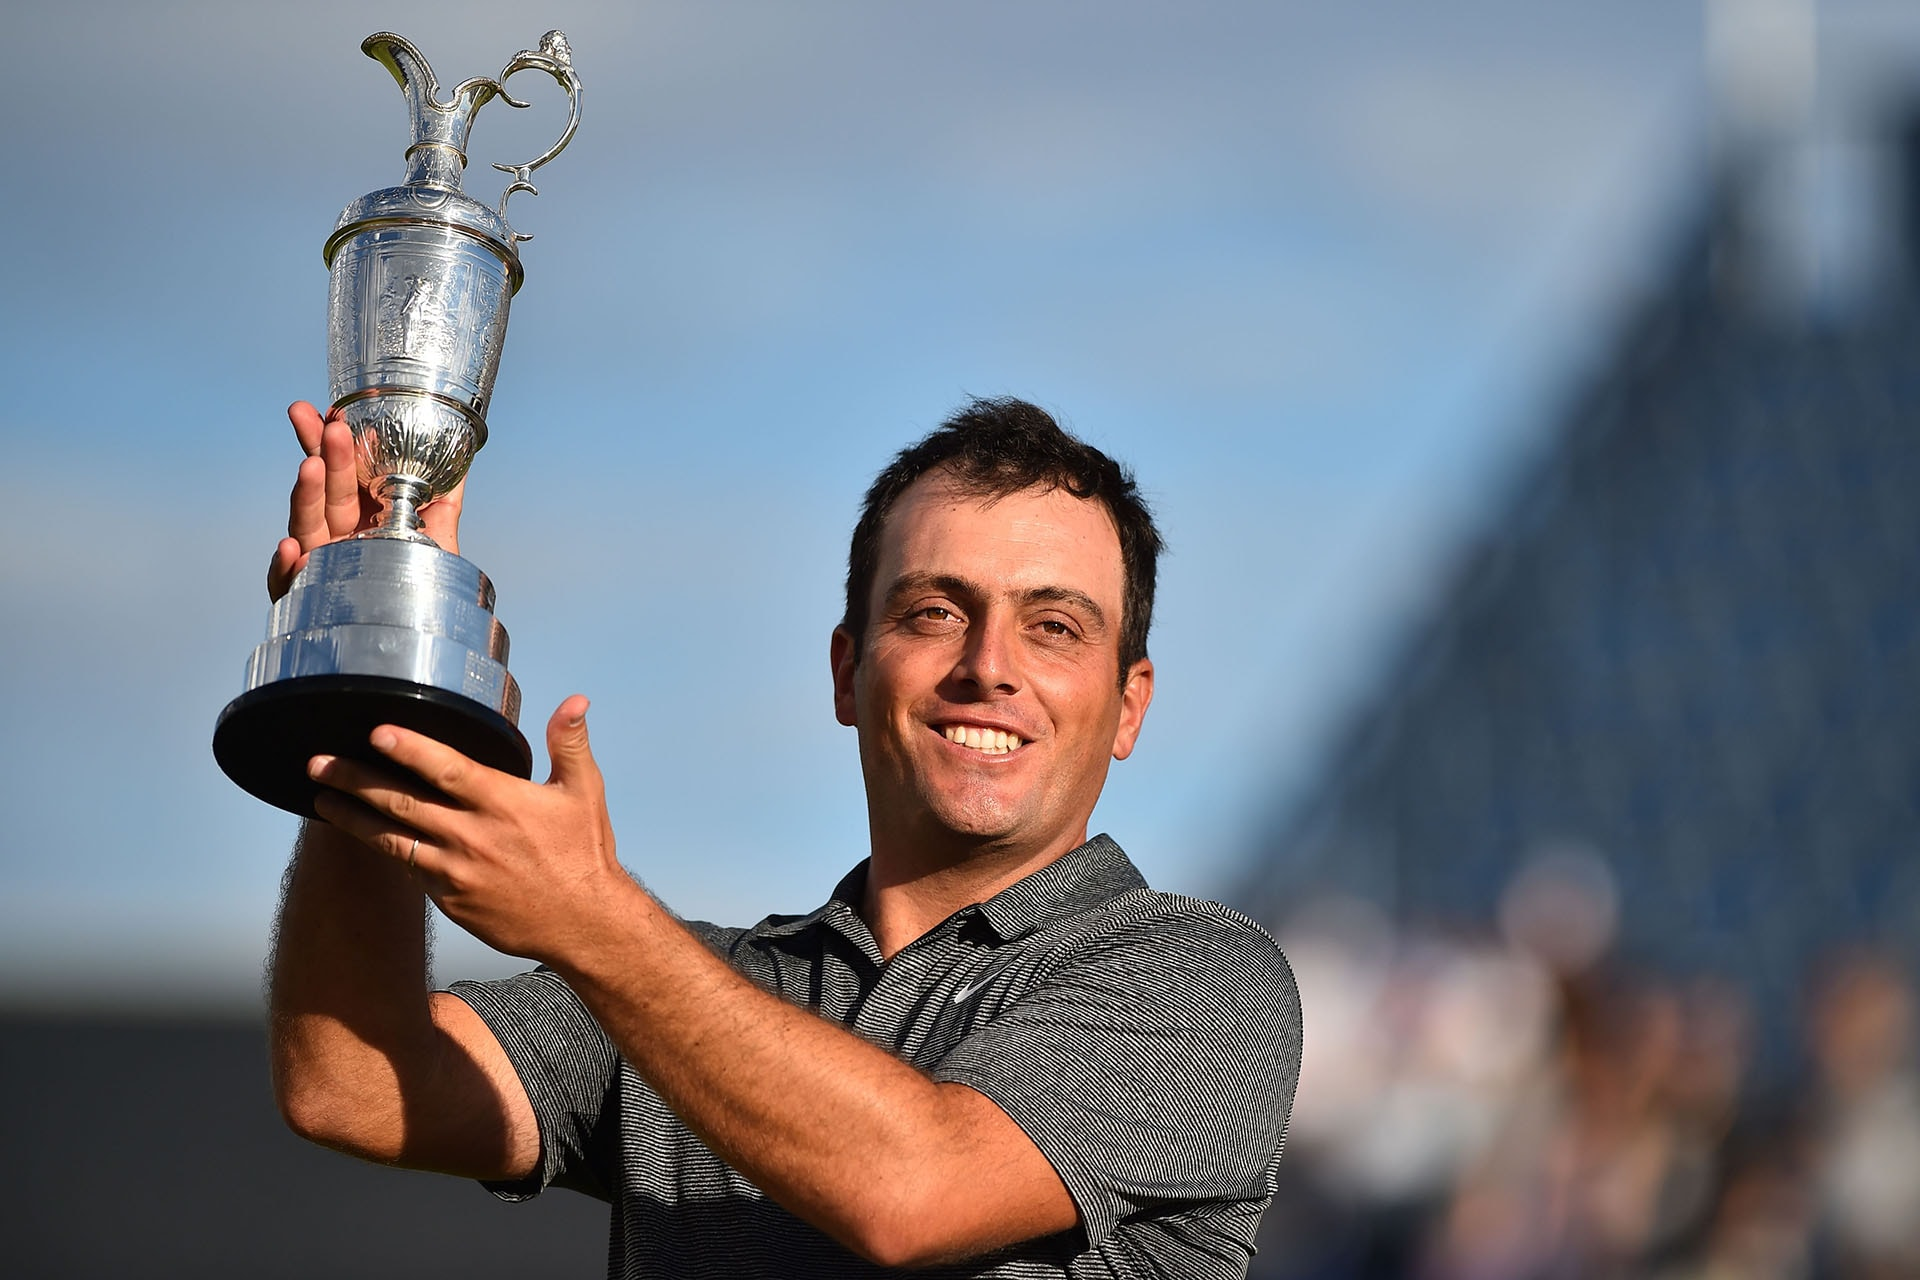 Francesco Molinari becomes a major champion